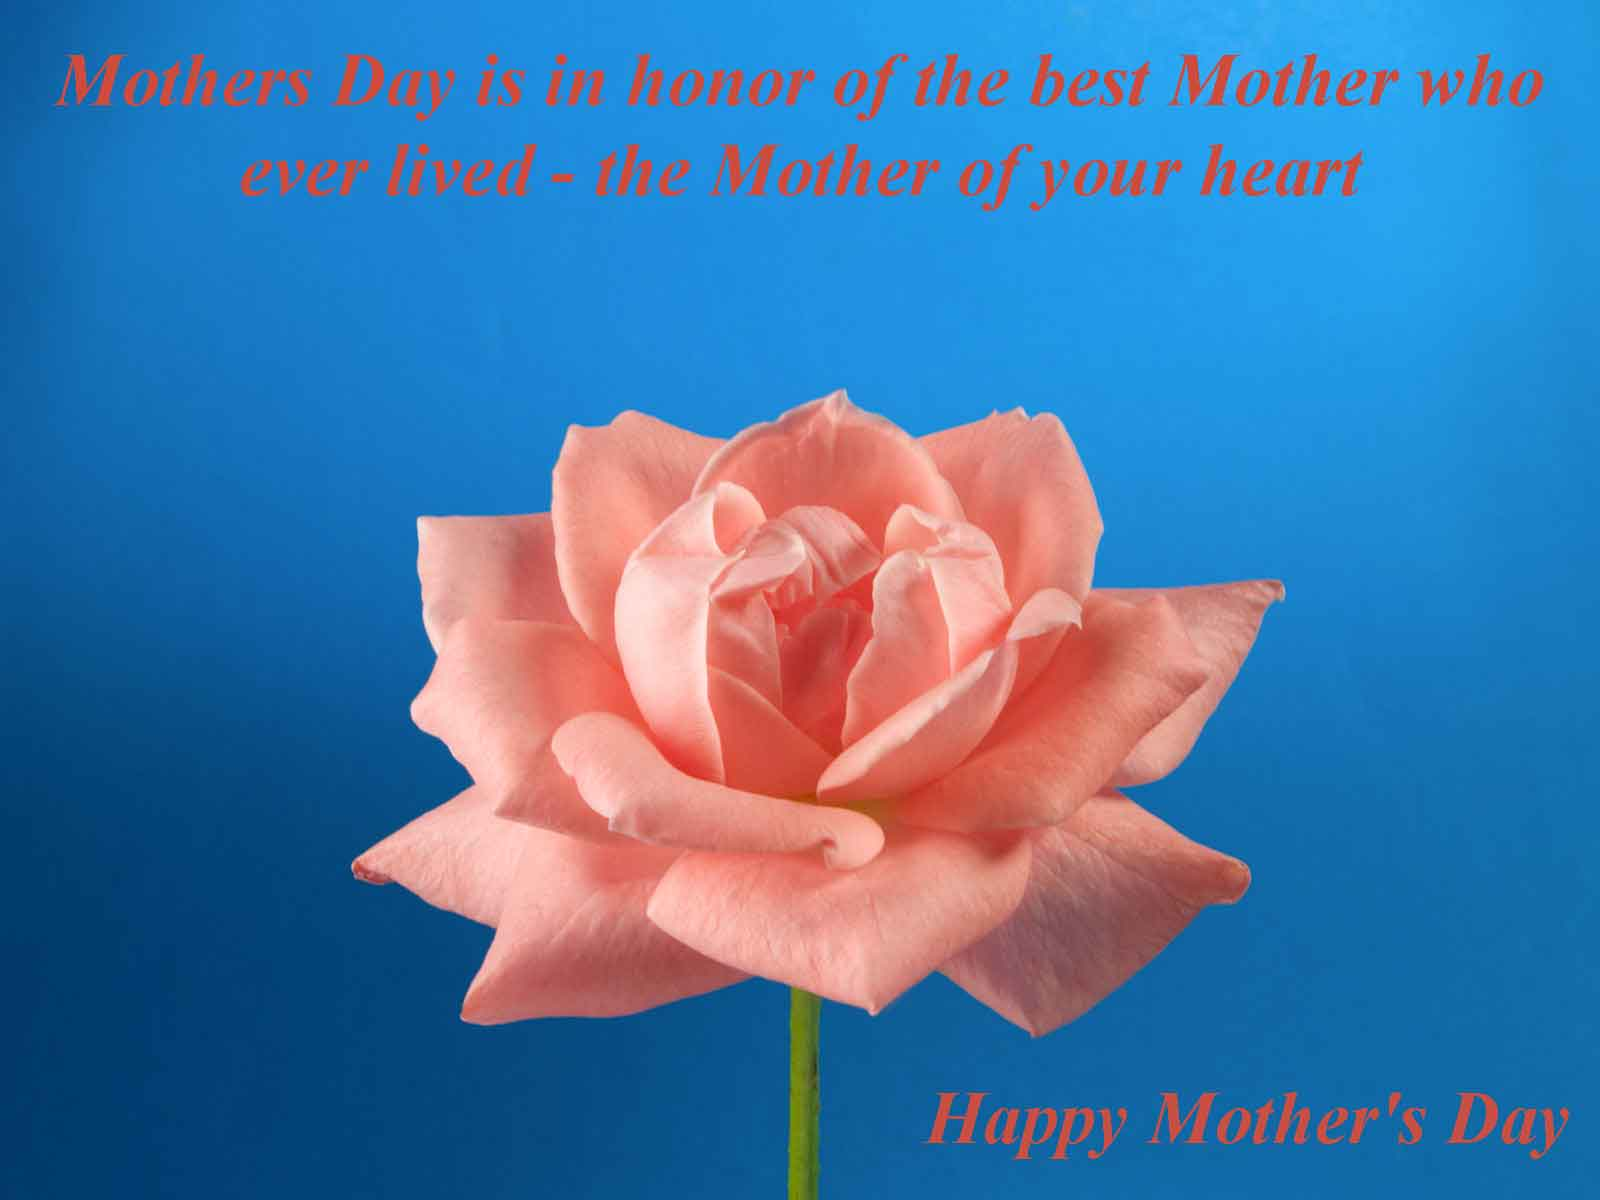 Mothers Day Beautiful Quotes Wallpapers Cool Christian Wallpapers